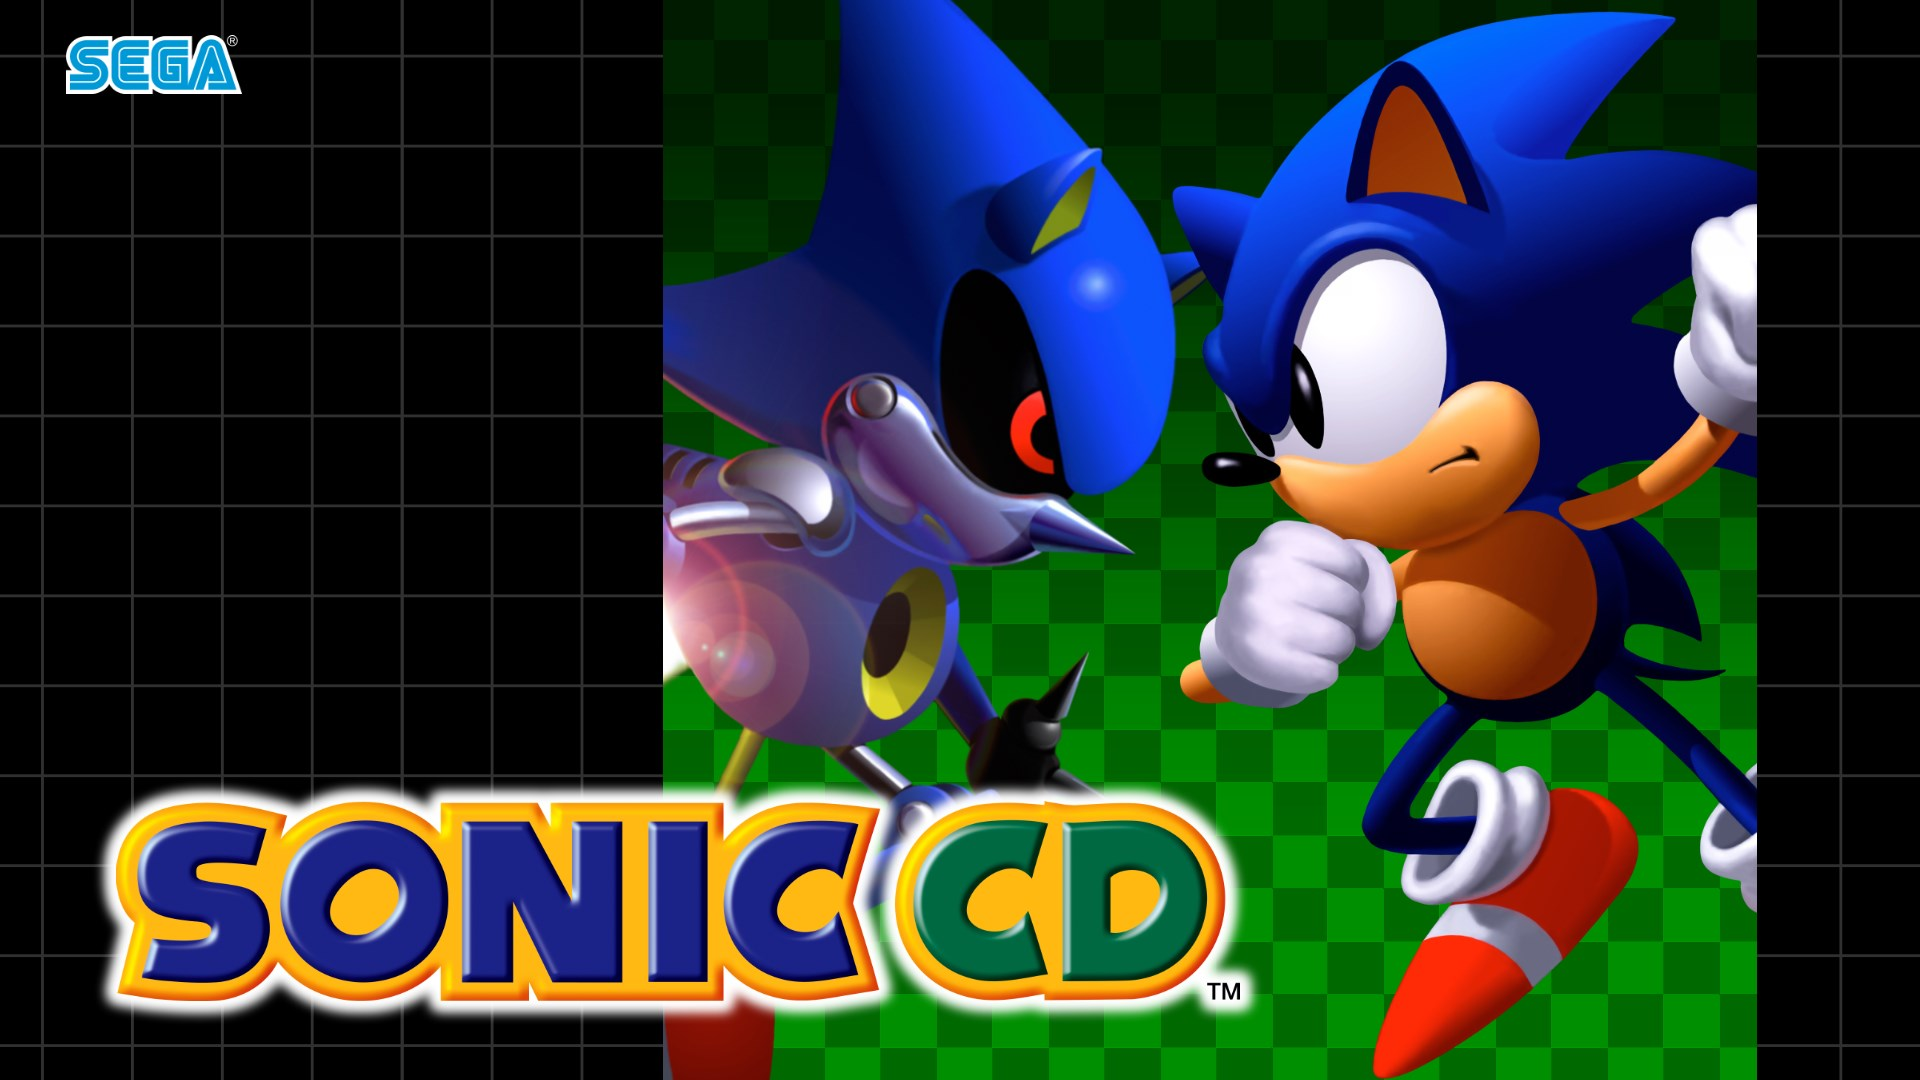 Buy Sonic Cd Microsoft Store